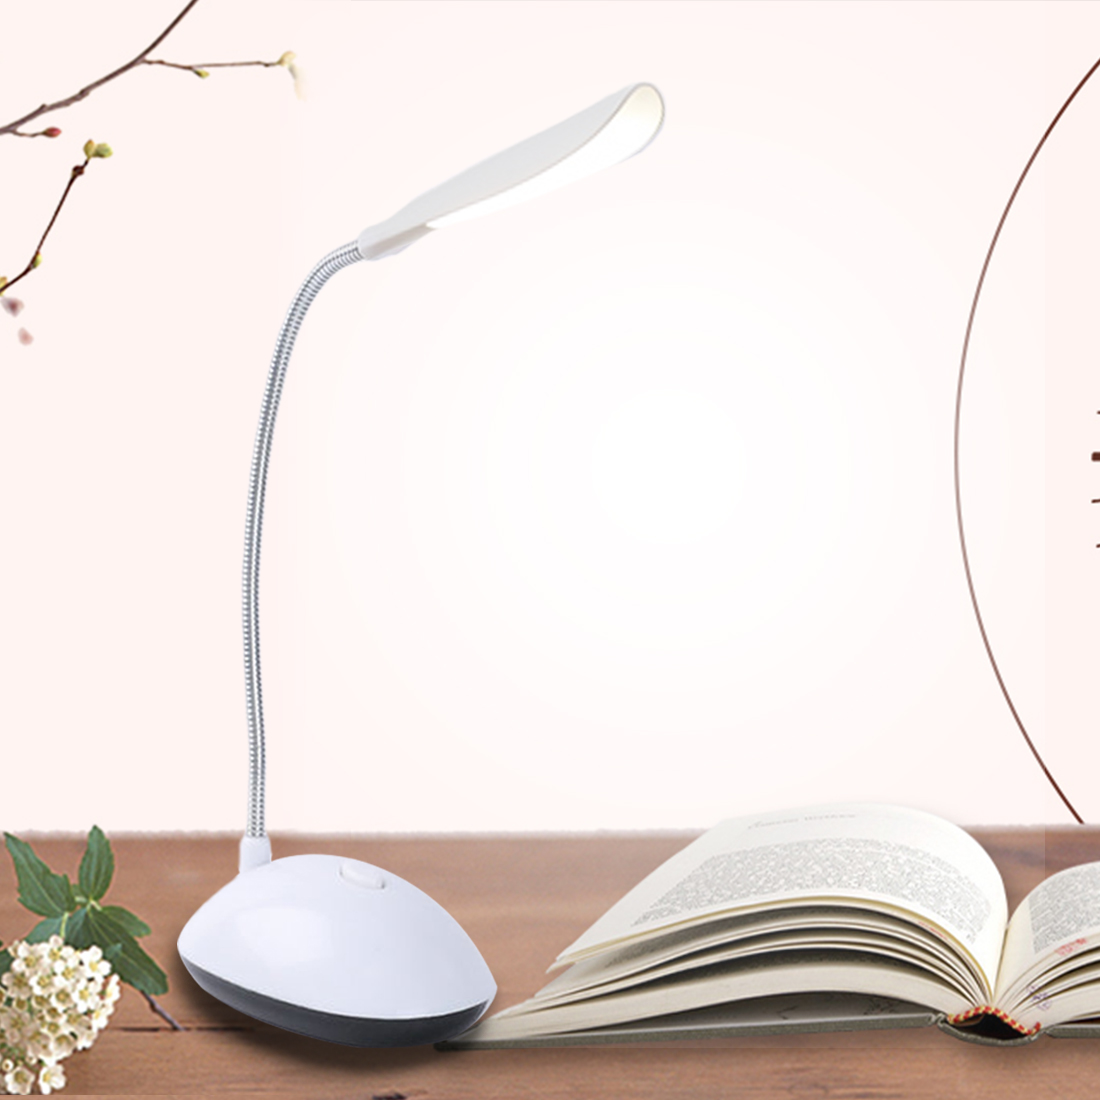 4 LEDs Didoe Table Lamp Folding High Lumen Eye-Protection Table Light AAA Battery Powered Mini LED Desk Lamp 4 LEDs Didoe Table Lamp Folding High Lumen Eye-Protection Table Light AAA Battery Powered Mini LED Desk Lamp